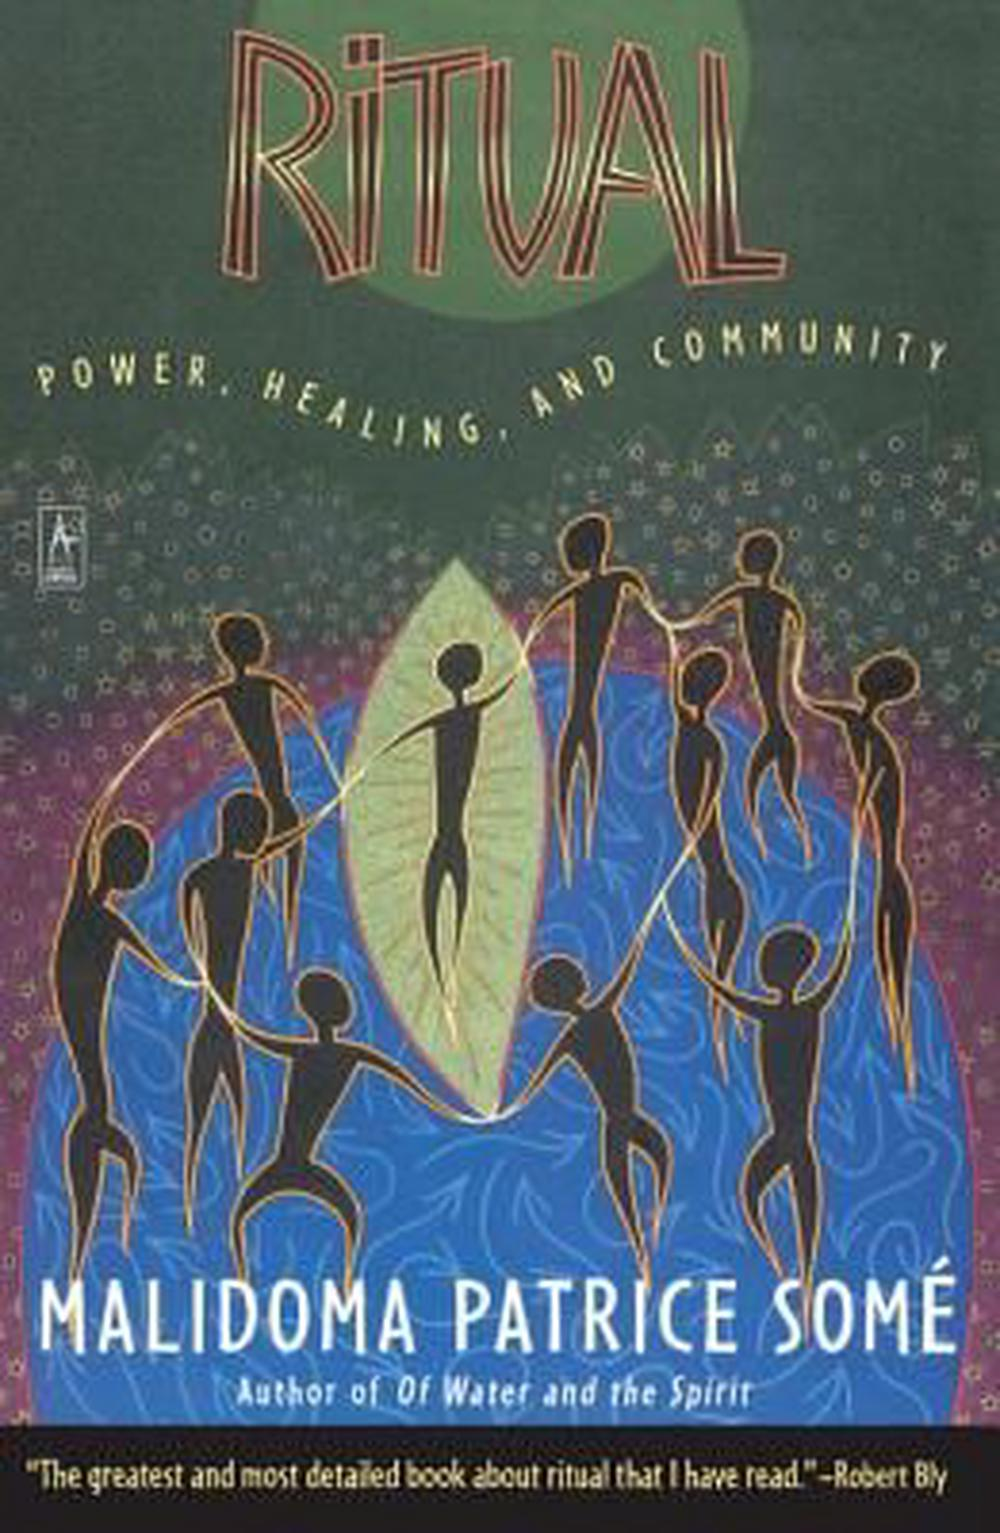 Ritual: Power, Healing, and Community